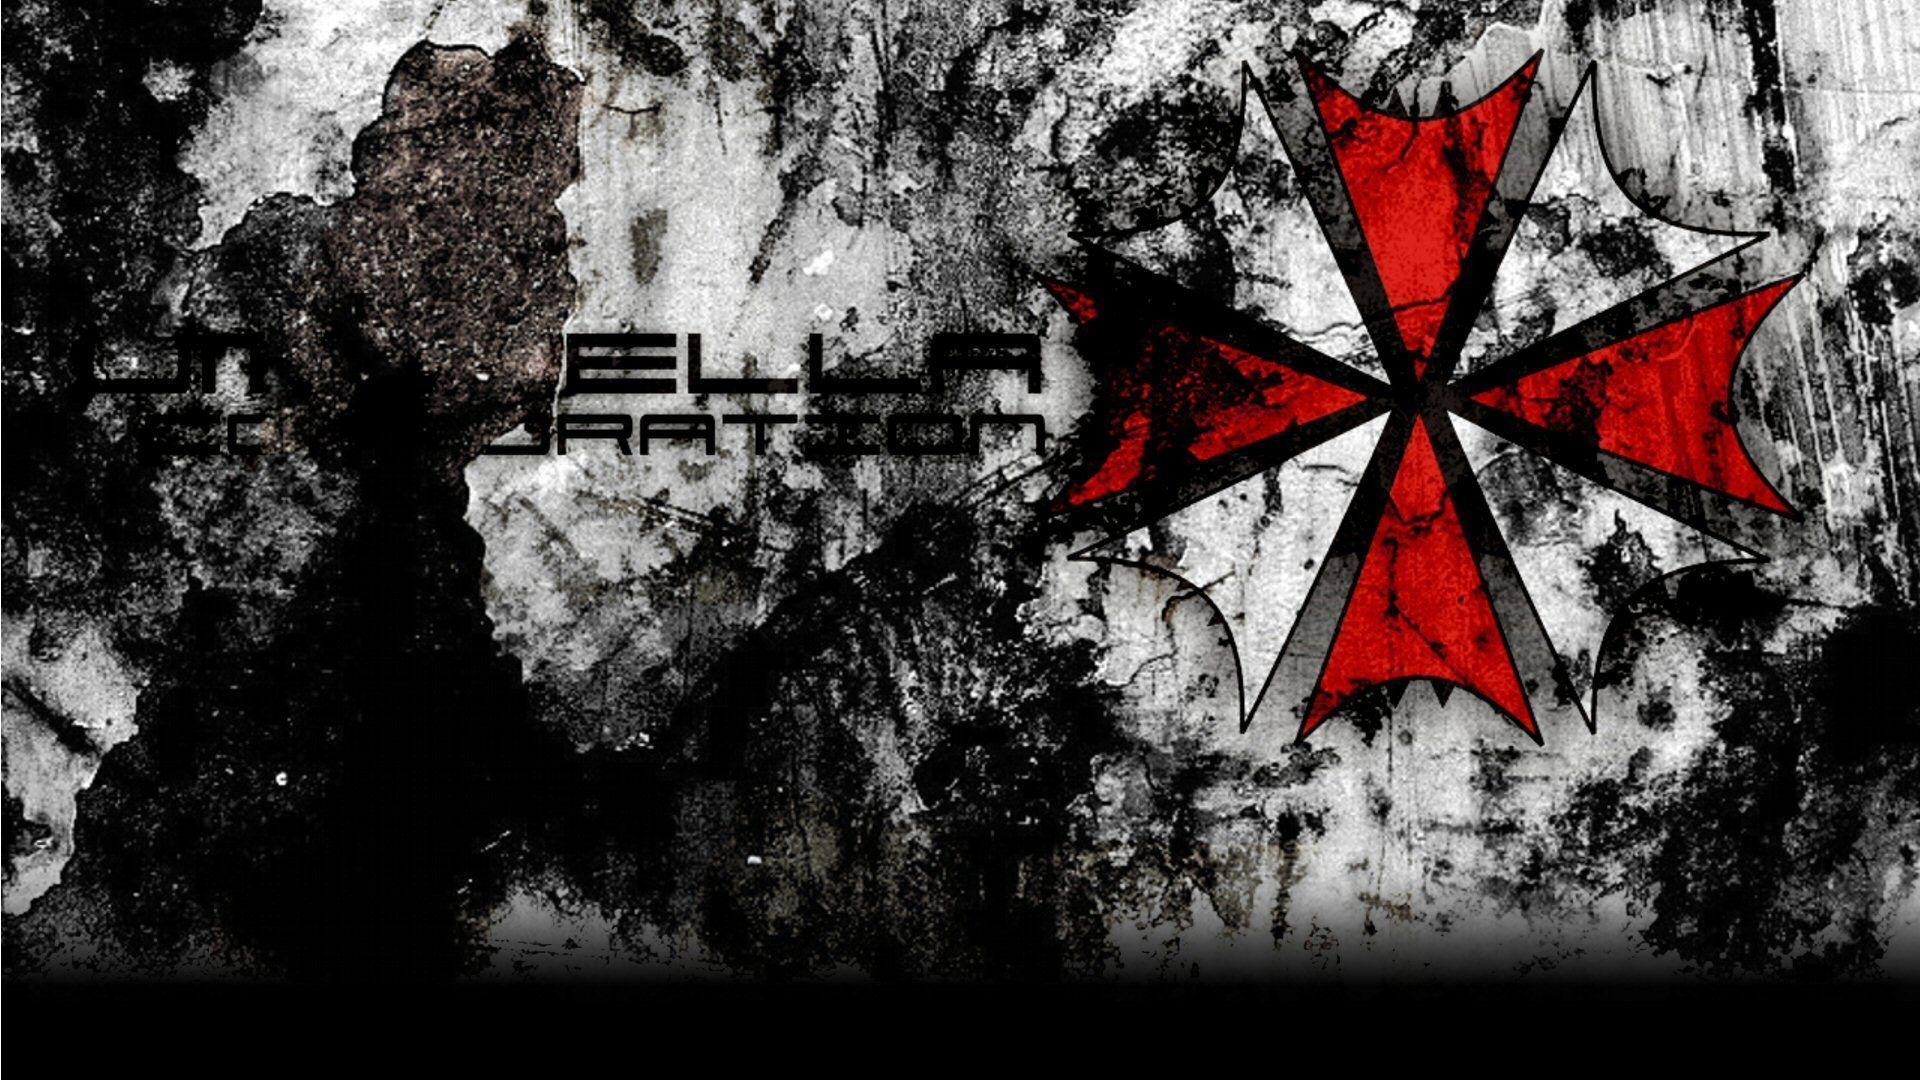 Resident Evil Wallpaper Picture Msr Evil Pictures Resident Evil Wallpaper Backgrounds